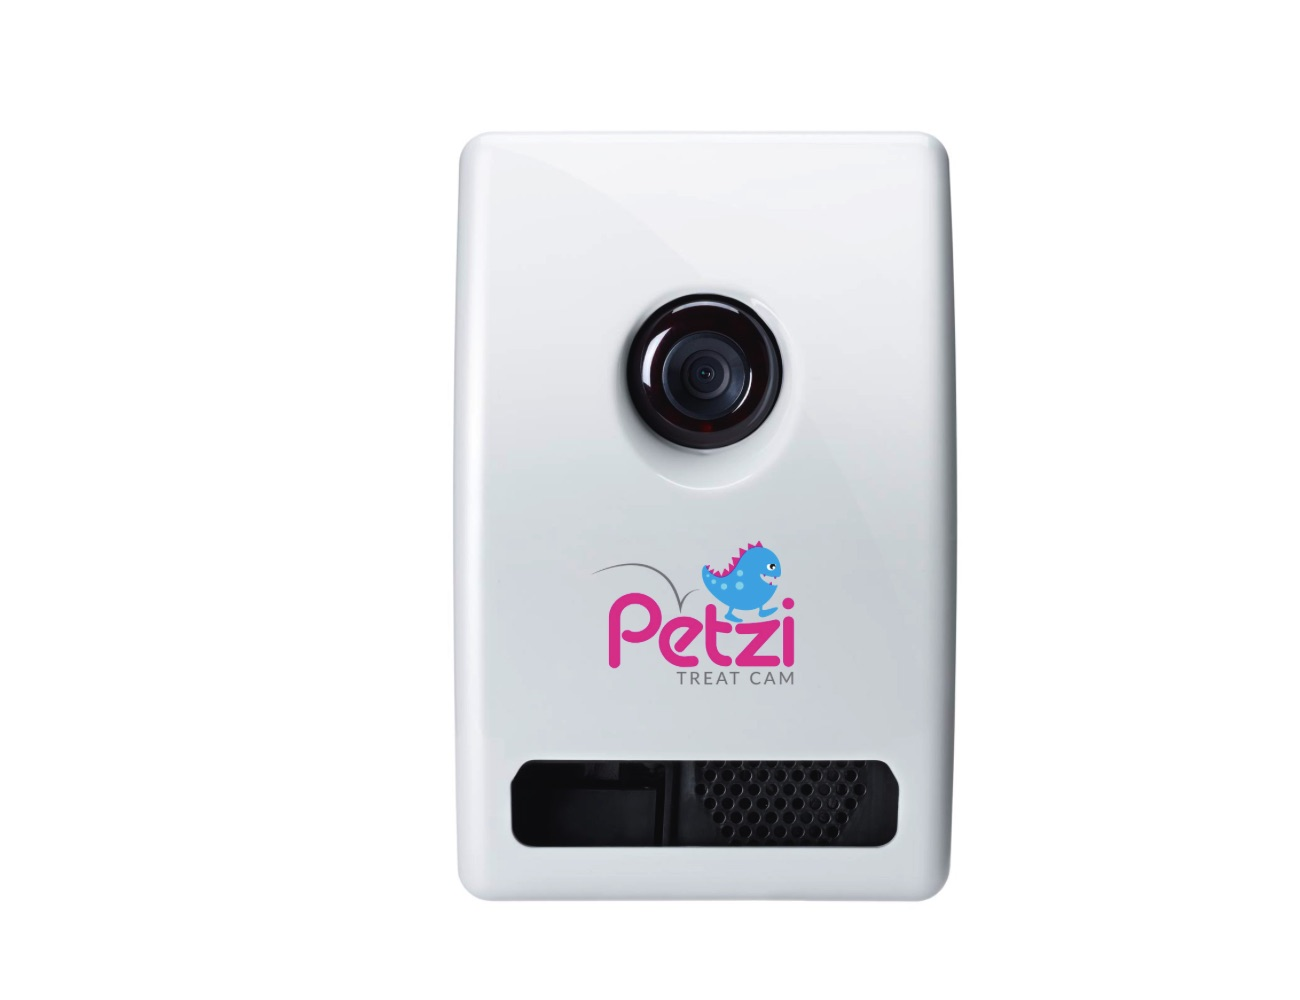 petzi-treat-cam-04